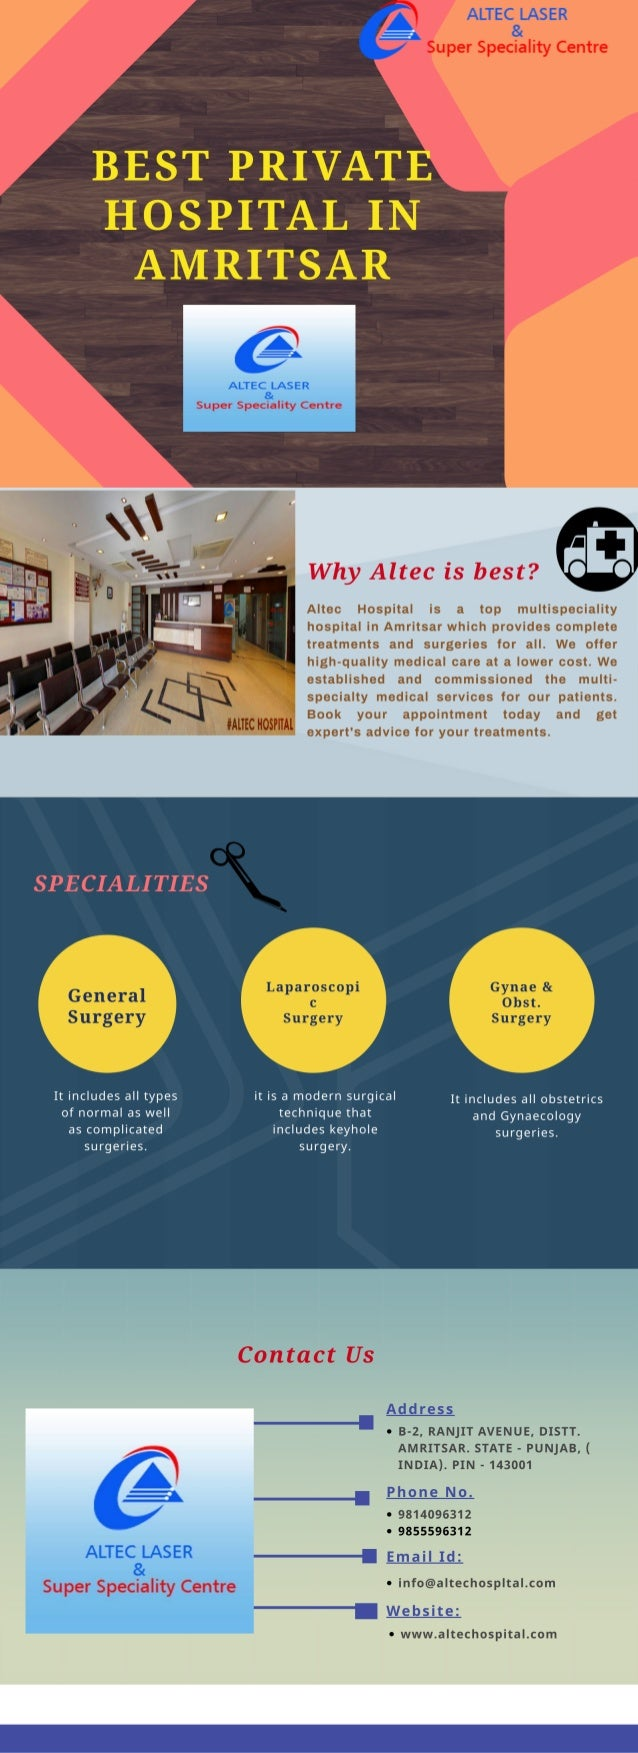 Altec Hospital-Best private hospital in Amritsar